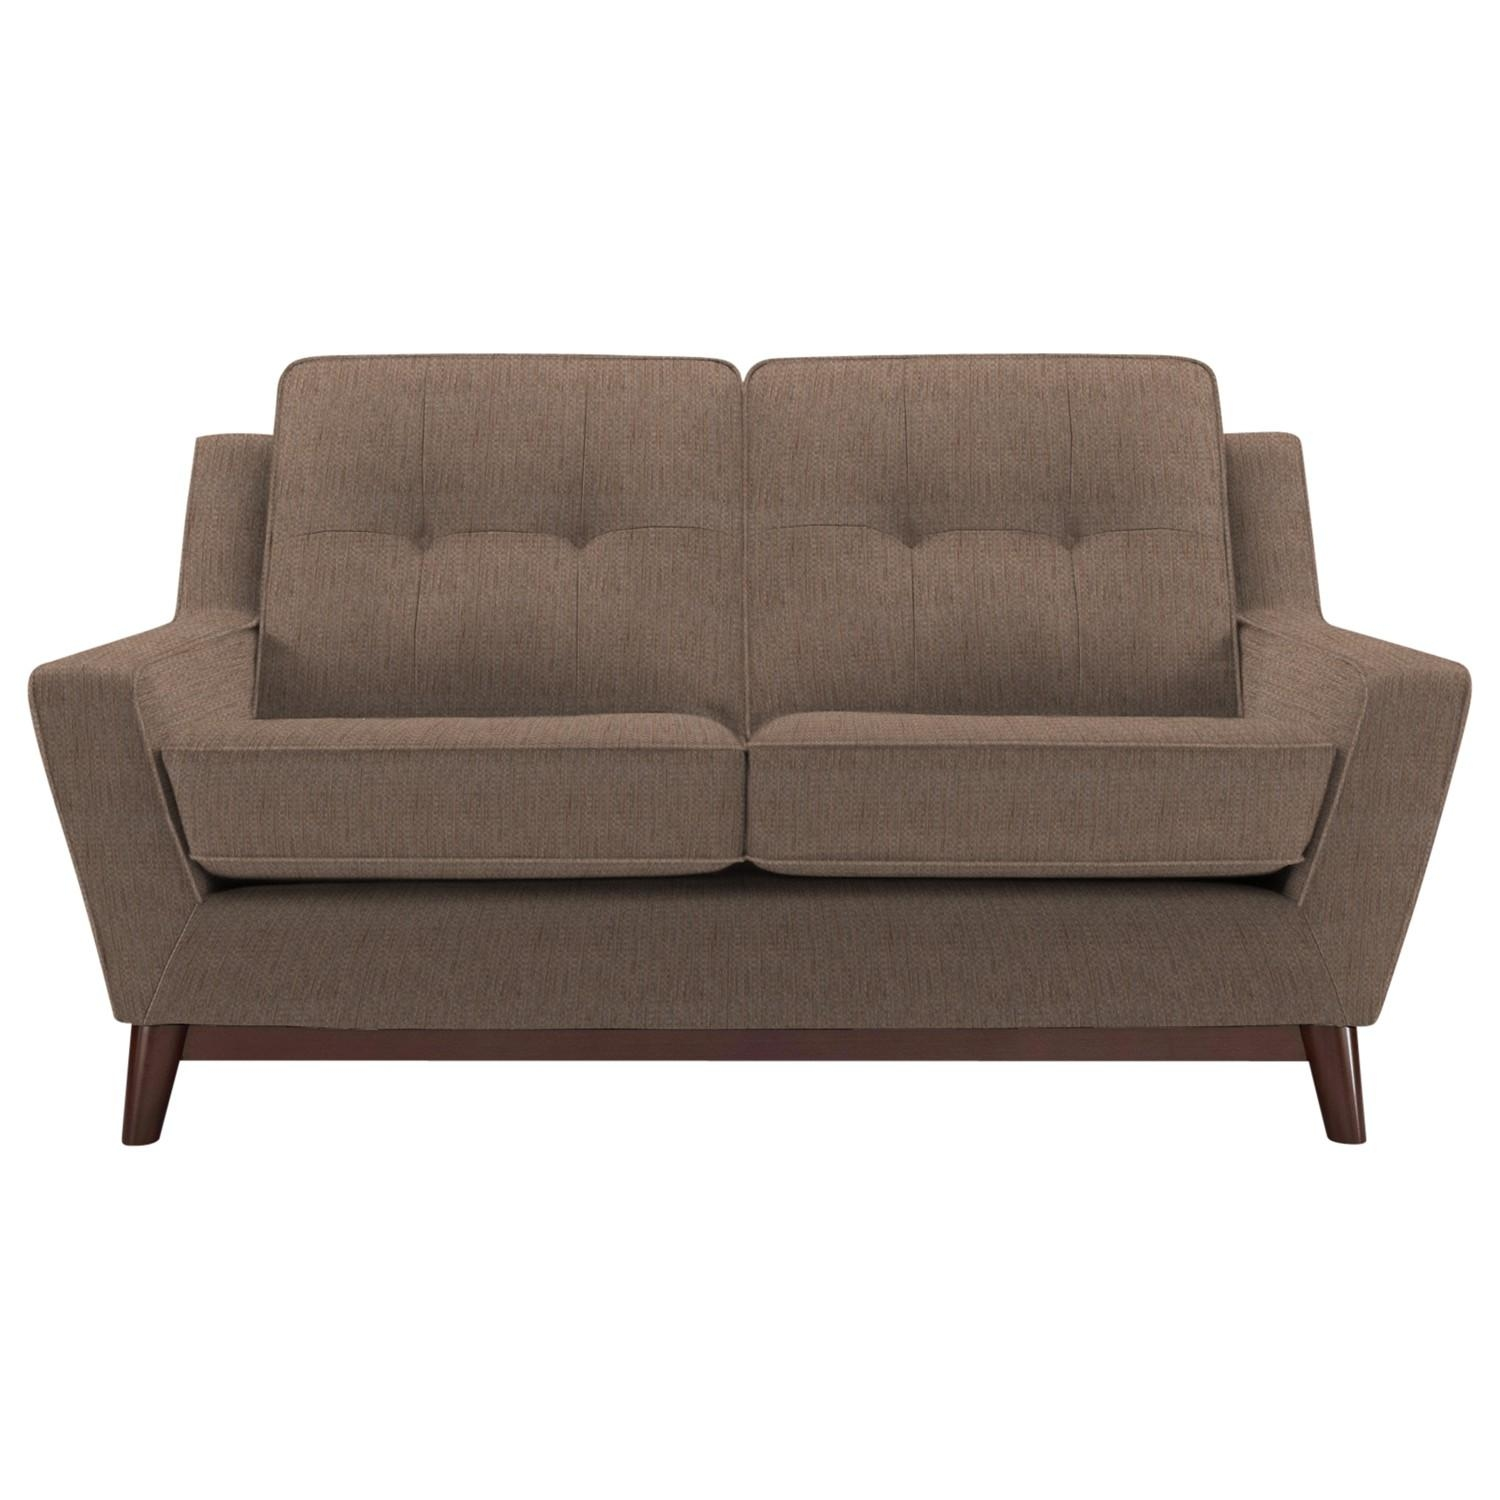 Featured Image of Small Modern Sofas